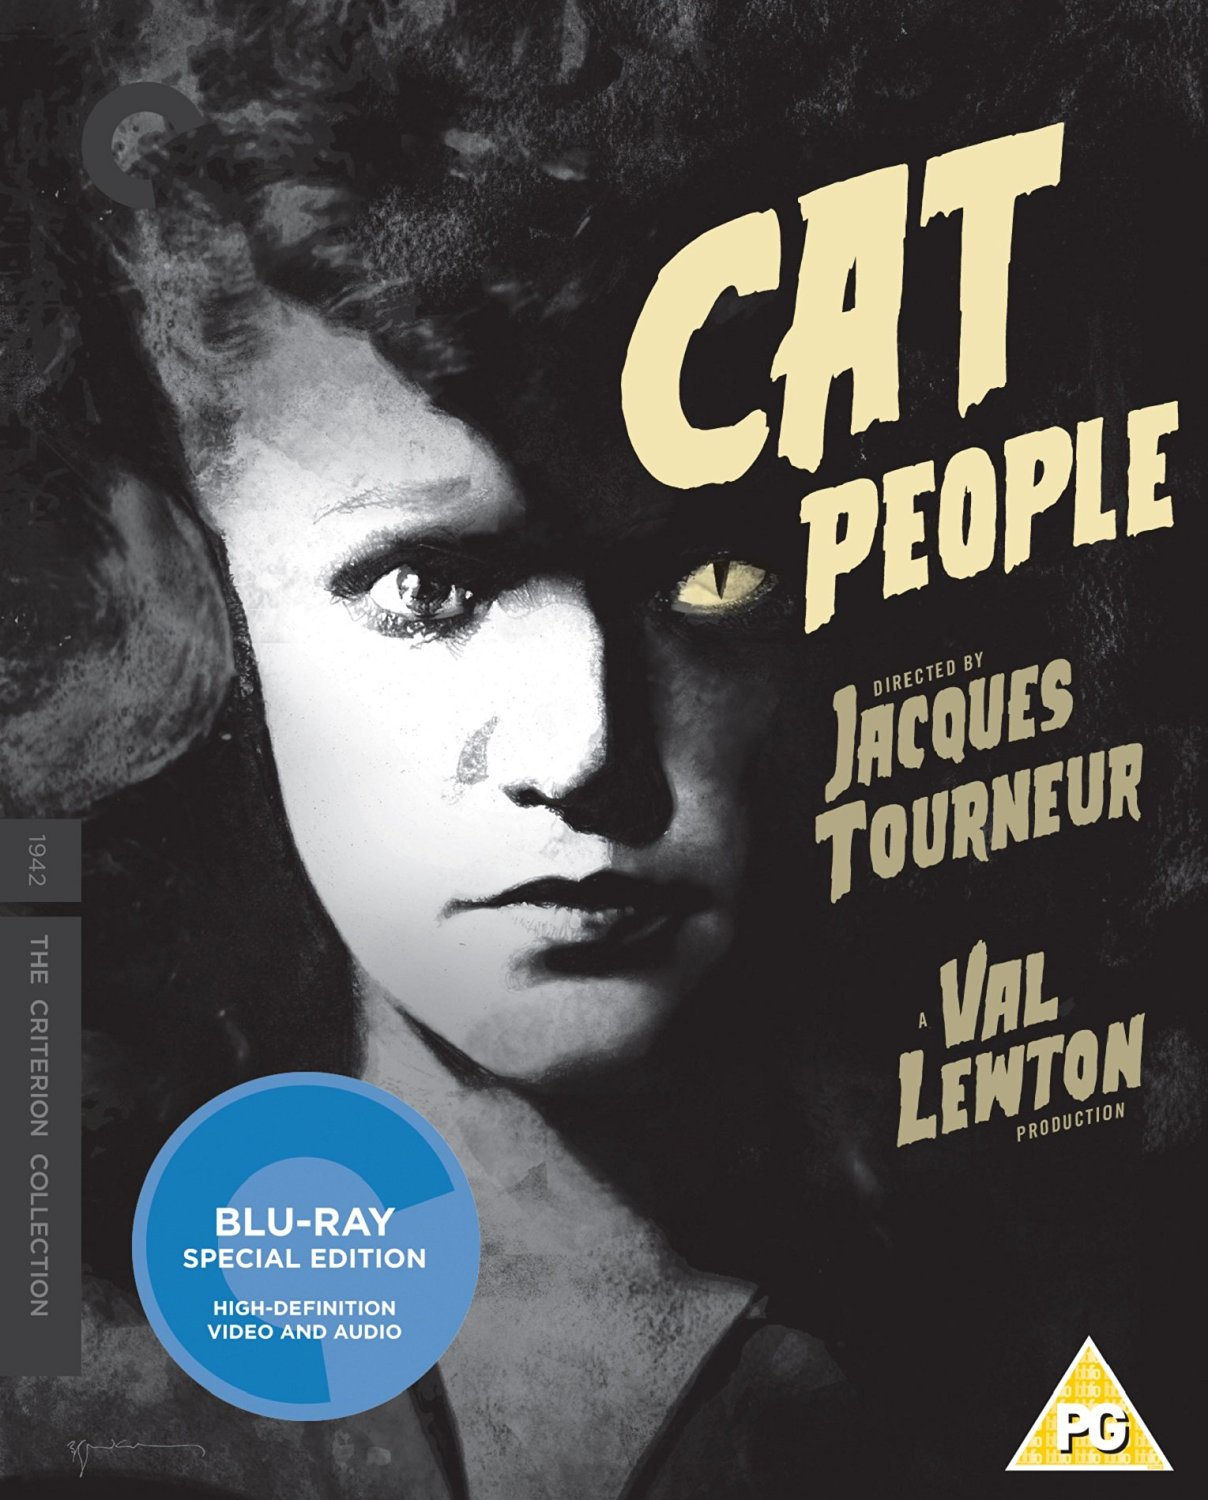 Cat People Blu-ray review: feline fear